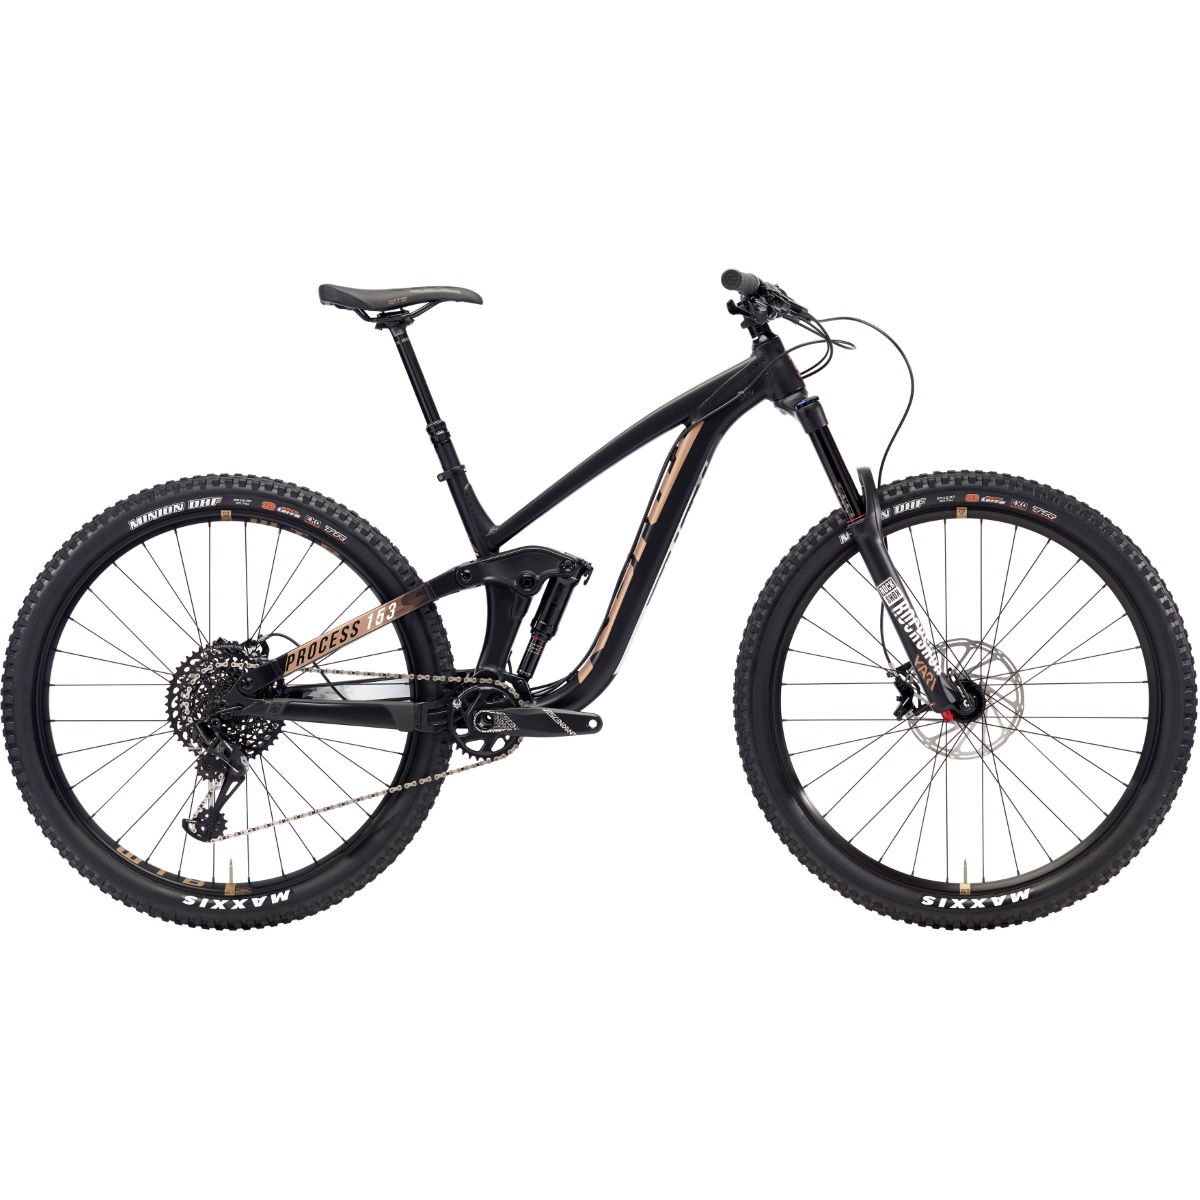 VTT Kona Prcoess 153 AL/DL 29 pouces (2018) - Medium Stock Bike Noir